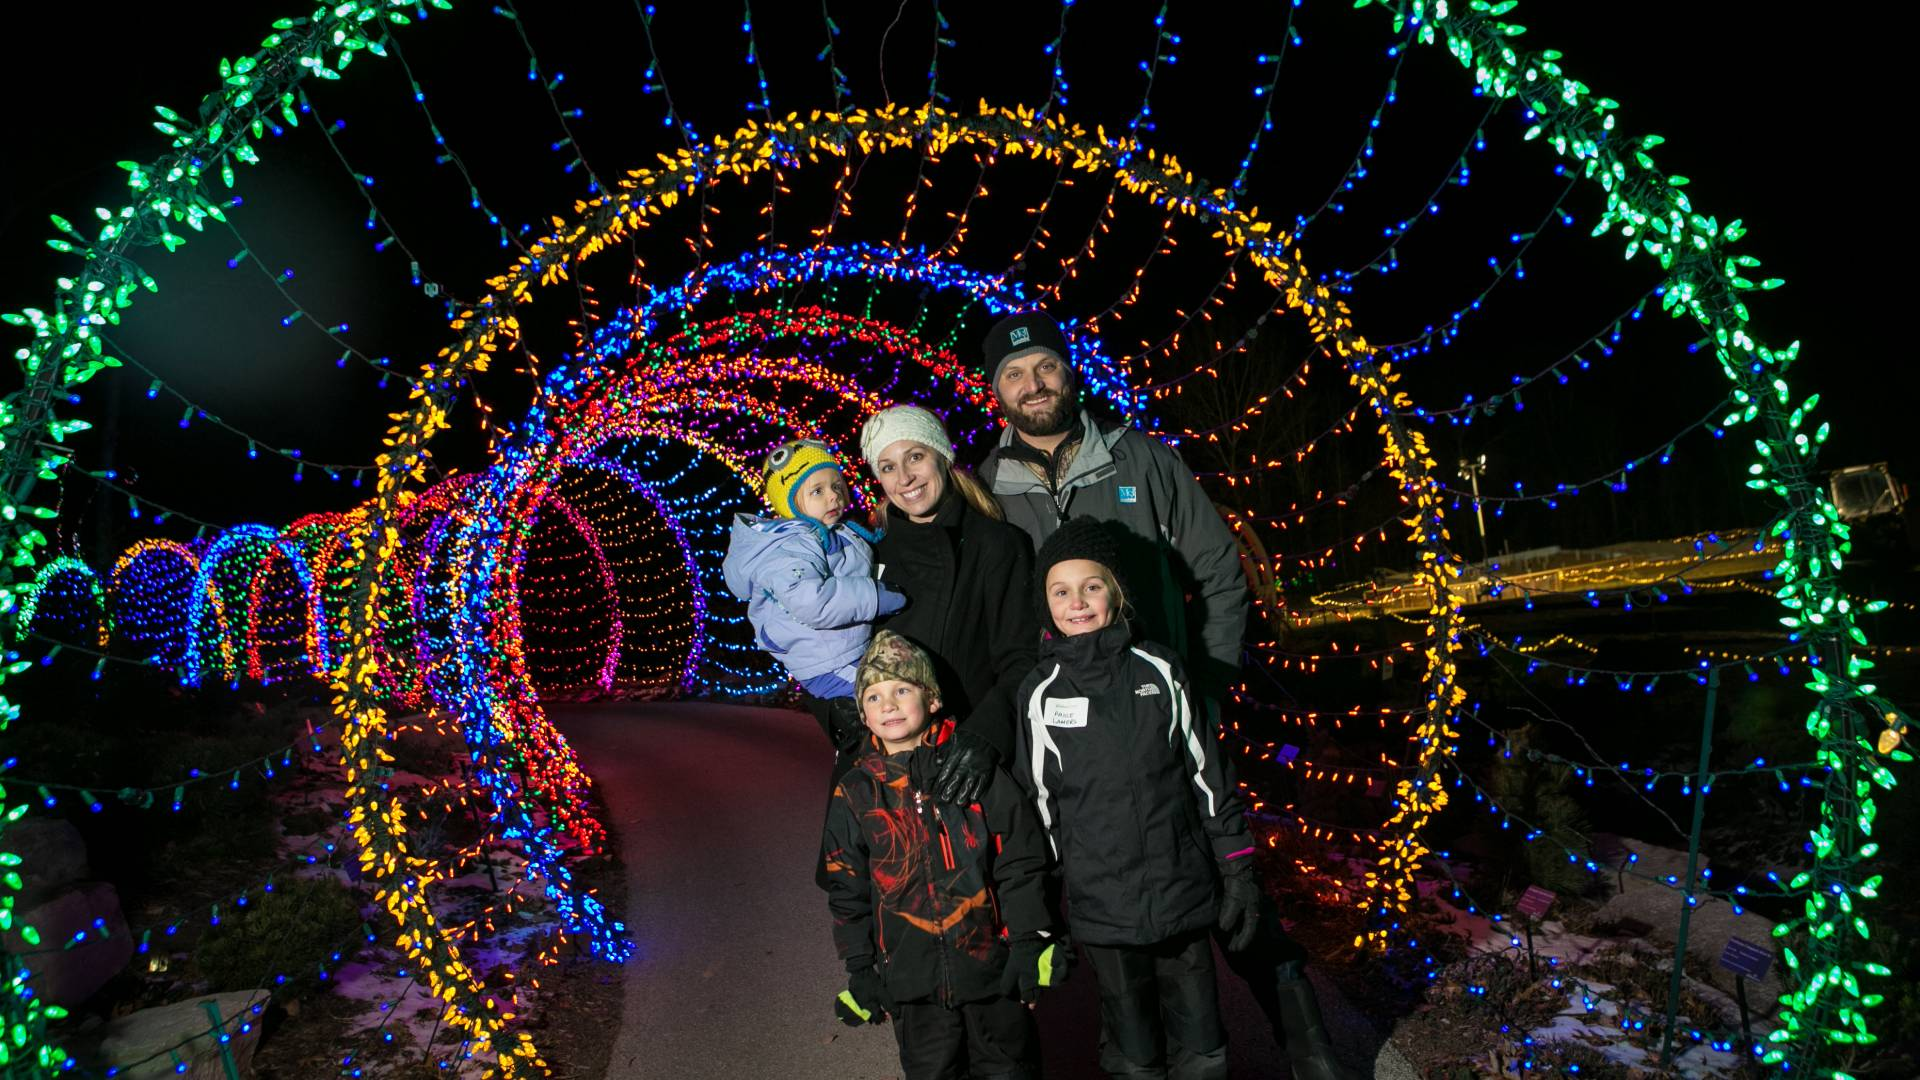 Green Bay Botanical Garden of Lights features over 250,000 lights to brighten the garden.